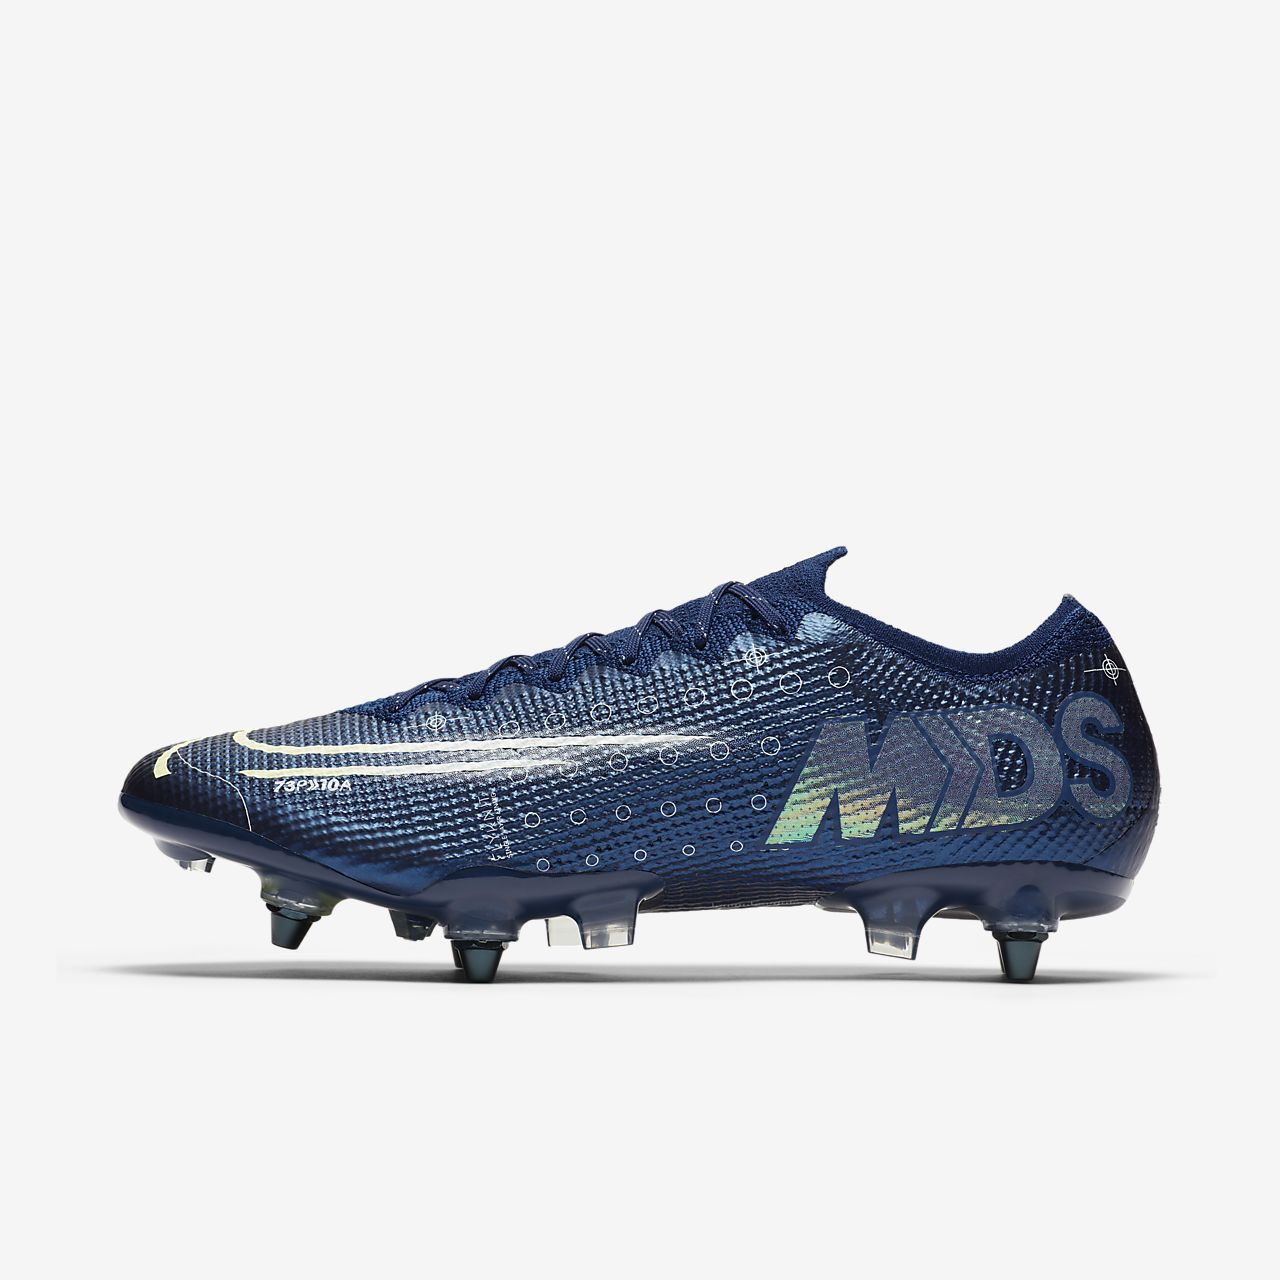 Nike Mercurial Vapor 13 Elite MDS SG-PRO Anti-Clog Traction Soft-Ground Football Boot